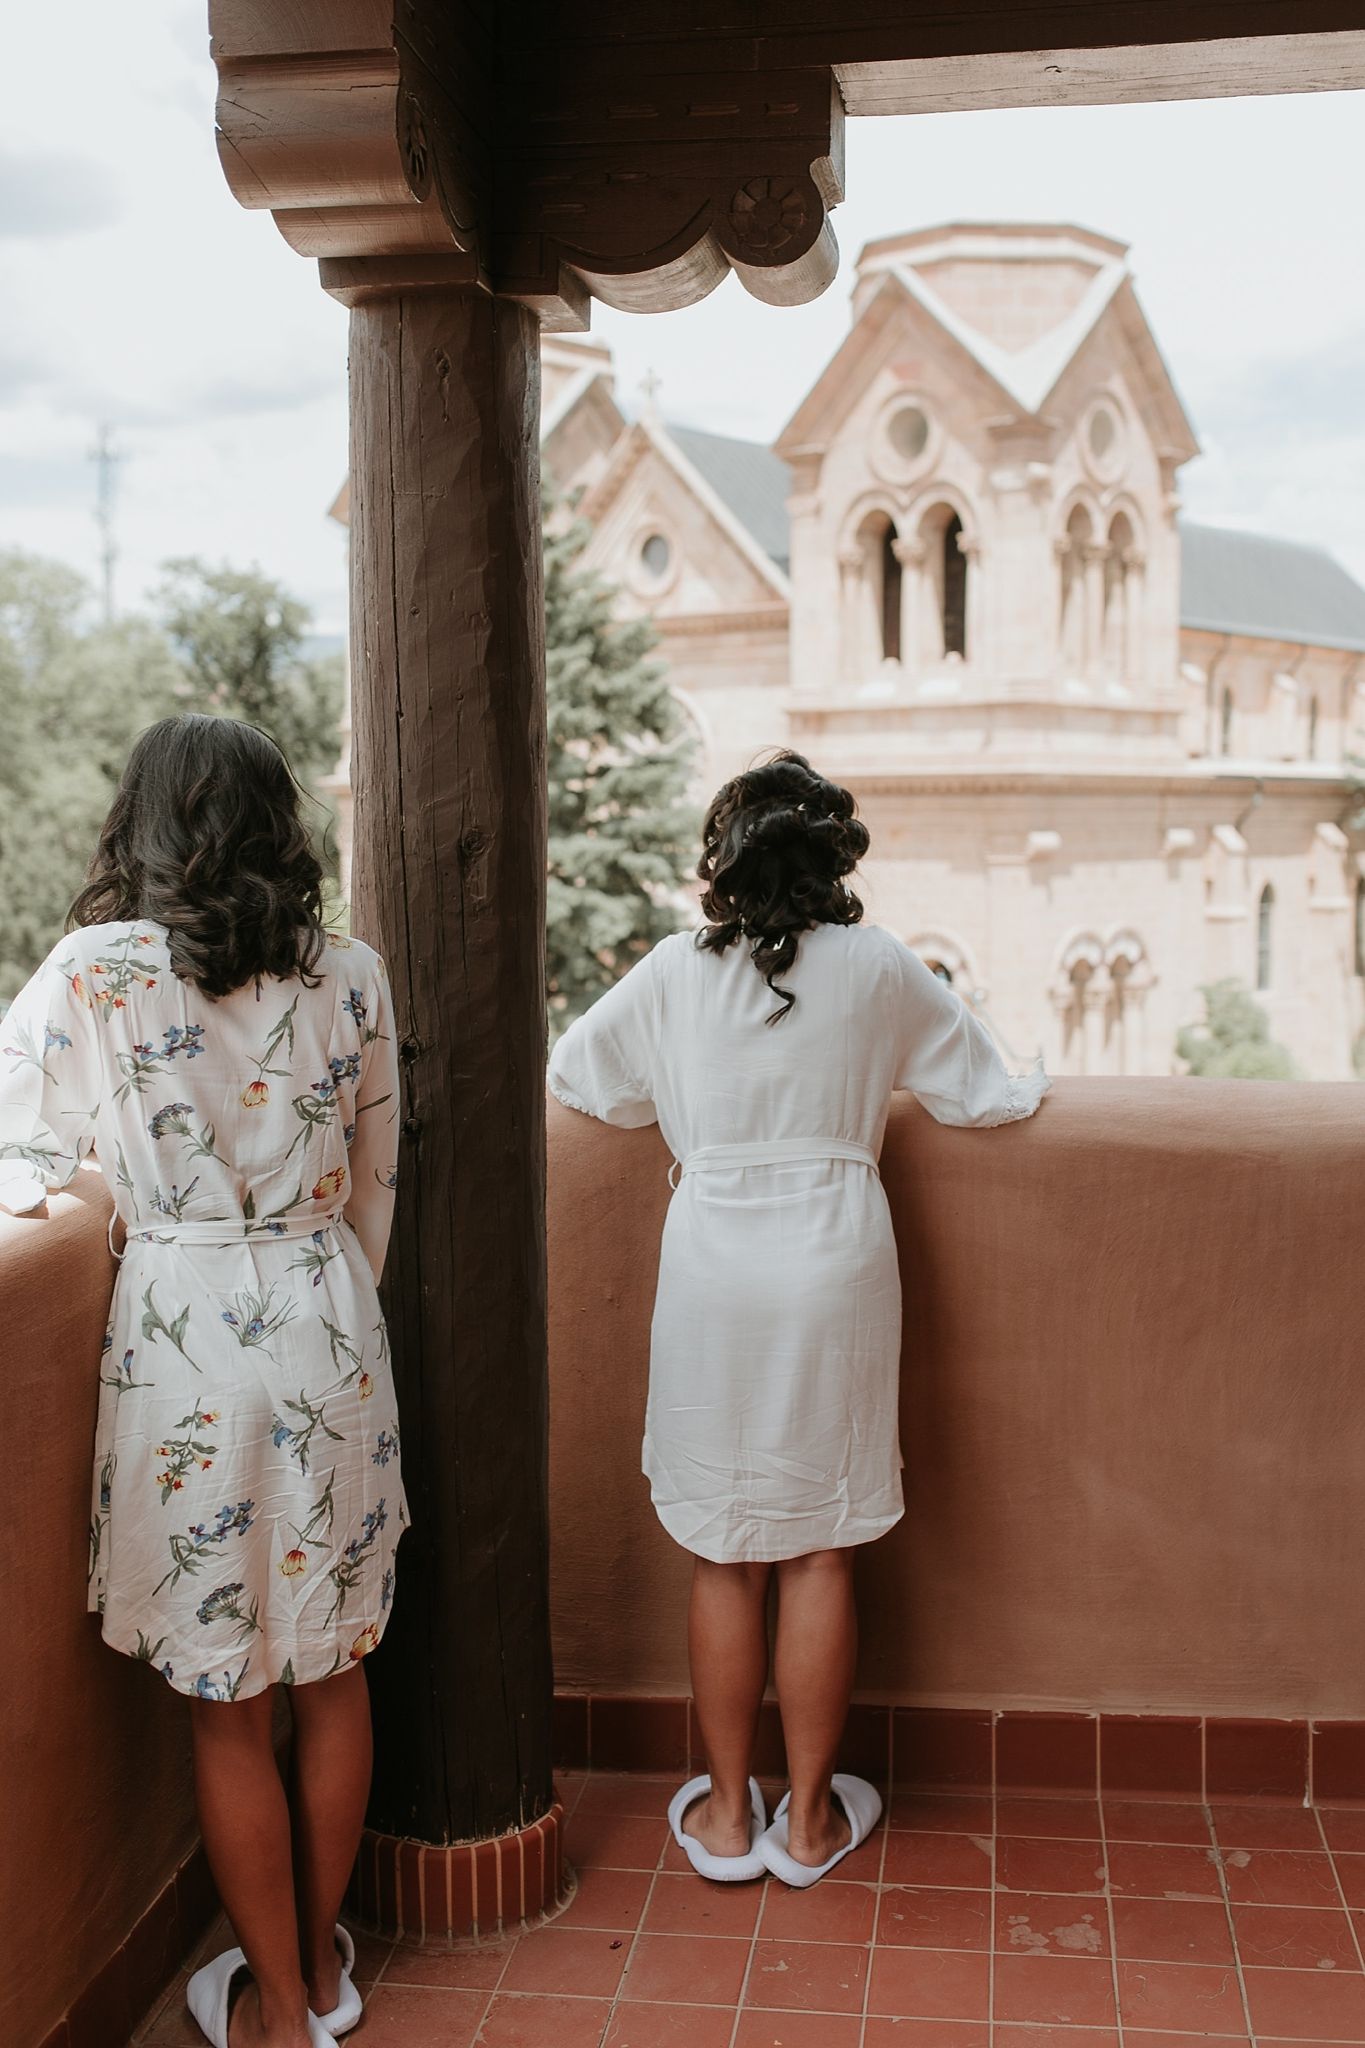 Alicia+lucia+photography+-+albuquerque+wedding+photographer+-+santa+fe+wedding+photography+-+new+mexico+wedding+photographer+-+new+mexico+wedding+-+engagement+-+santa+fe+wedding+-+la+fonda+on+the+plaza+-+la+fonda+wedding_0043.jpg